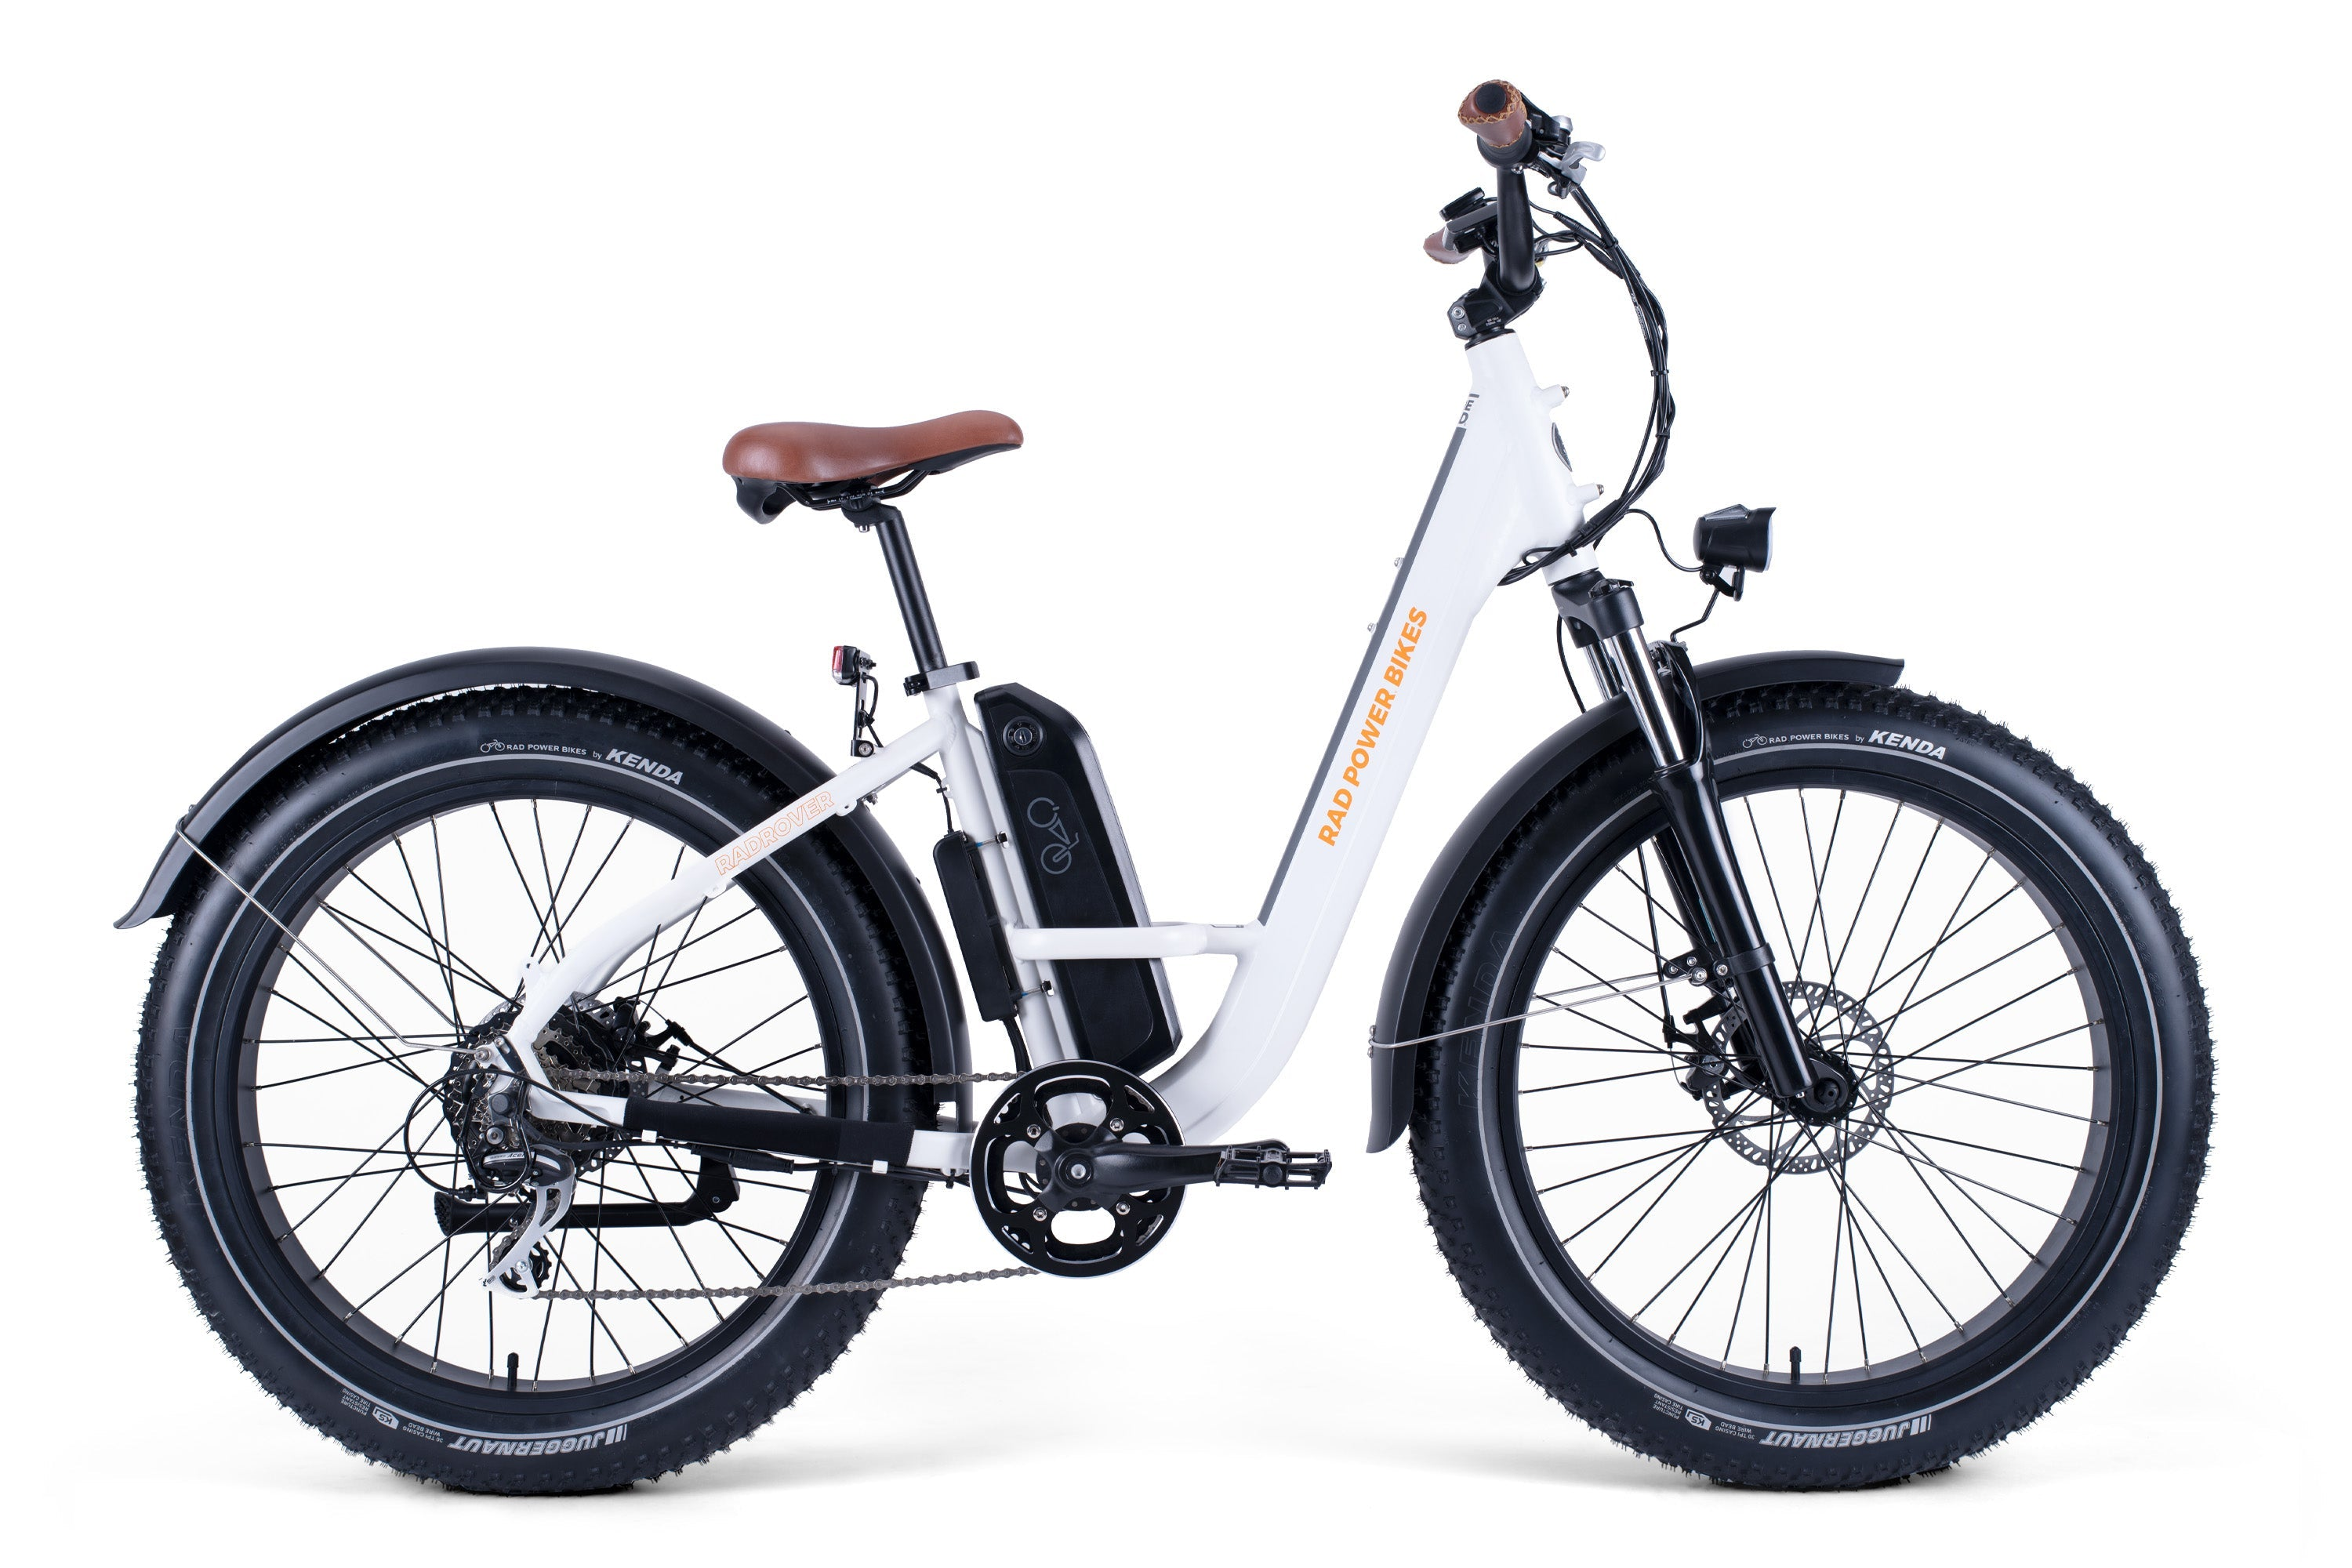 RadRover 5 step-through fat e-bike